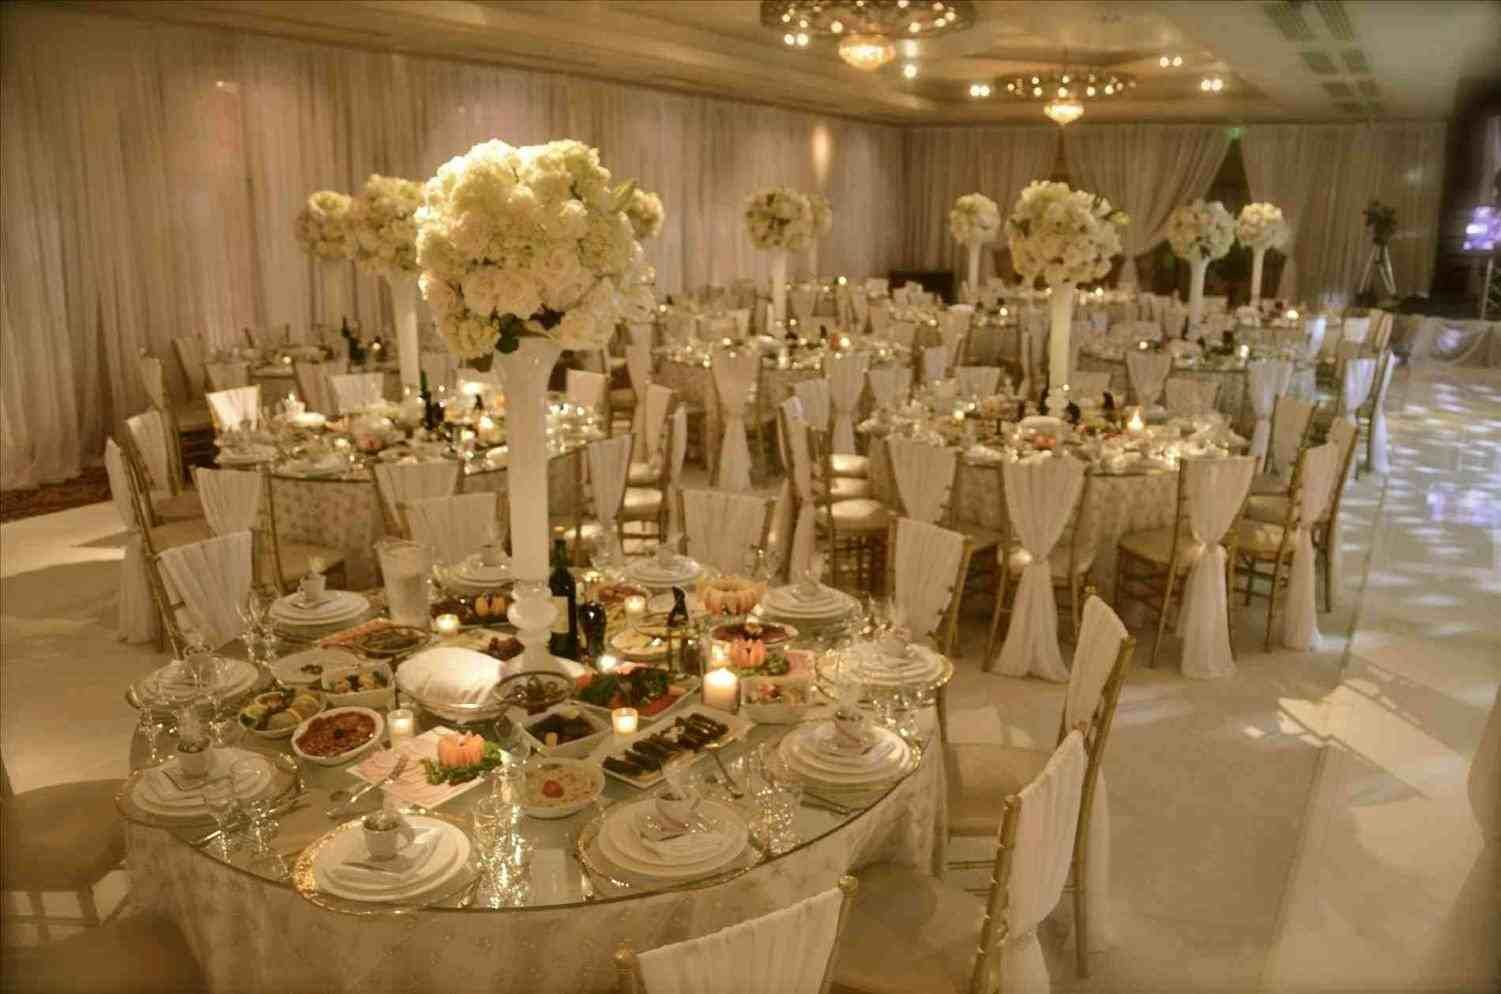 Wedding decorations luxury  luxury wedding decoration ideas  Weddings  Pinterest  Twilight